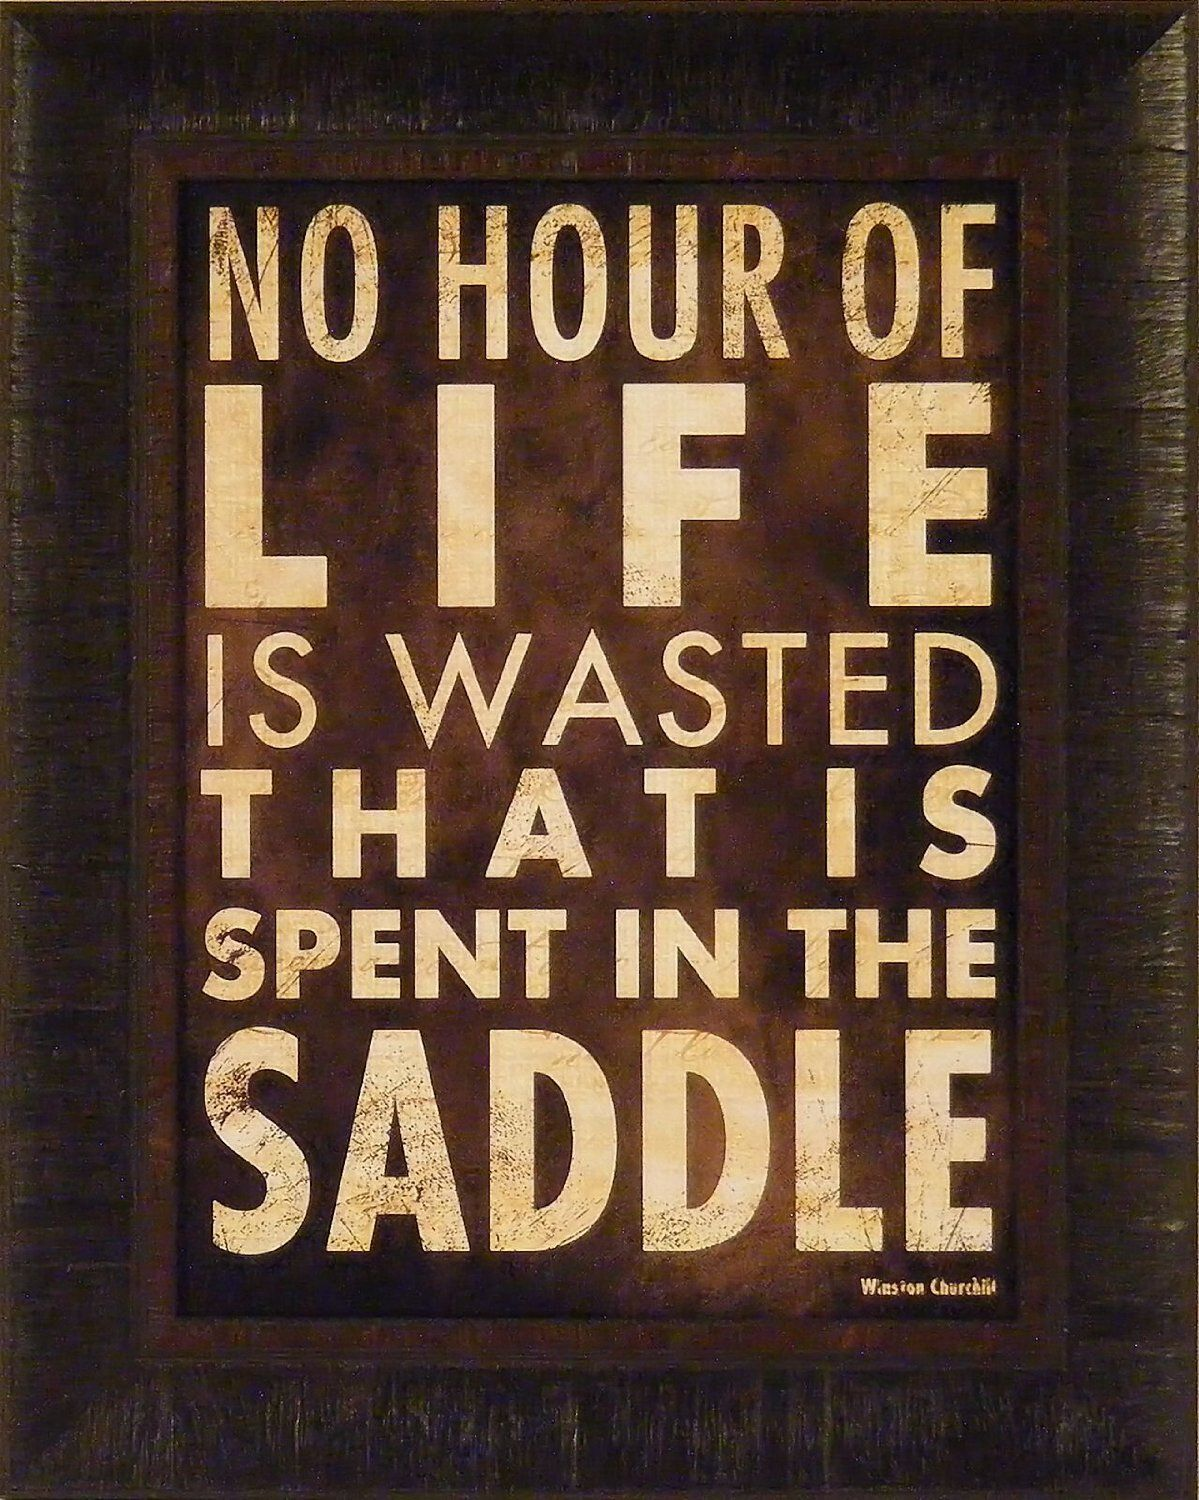 Winston Churchill horse quote | Horse Quotes | Pinterest ...